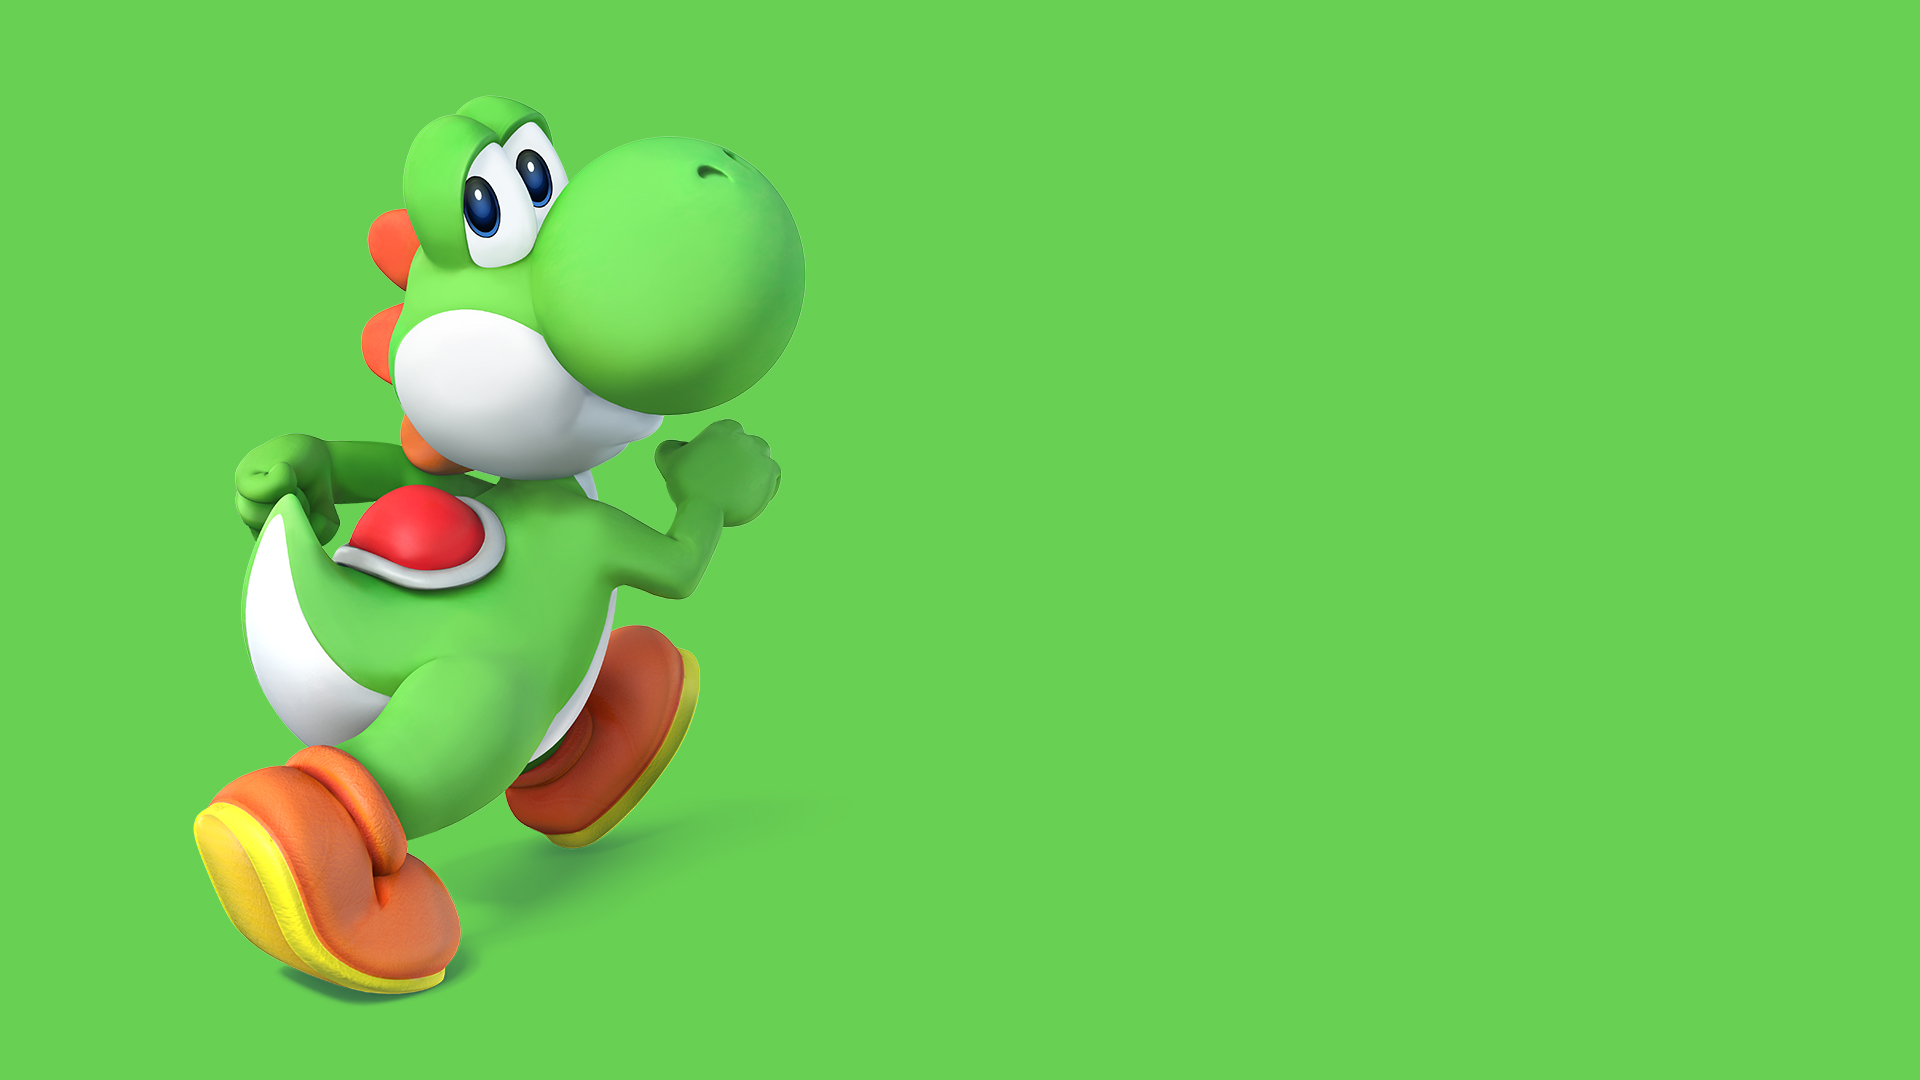 Wallpaper 3d Mario Bros Yoshi Wallpaper 1920x1080 48675